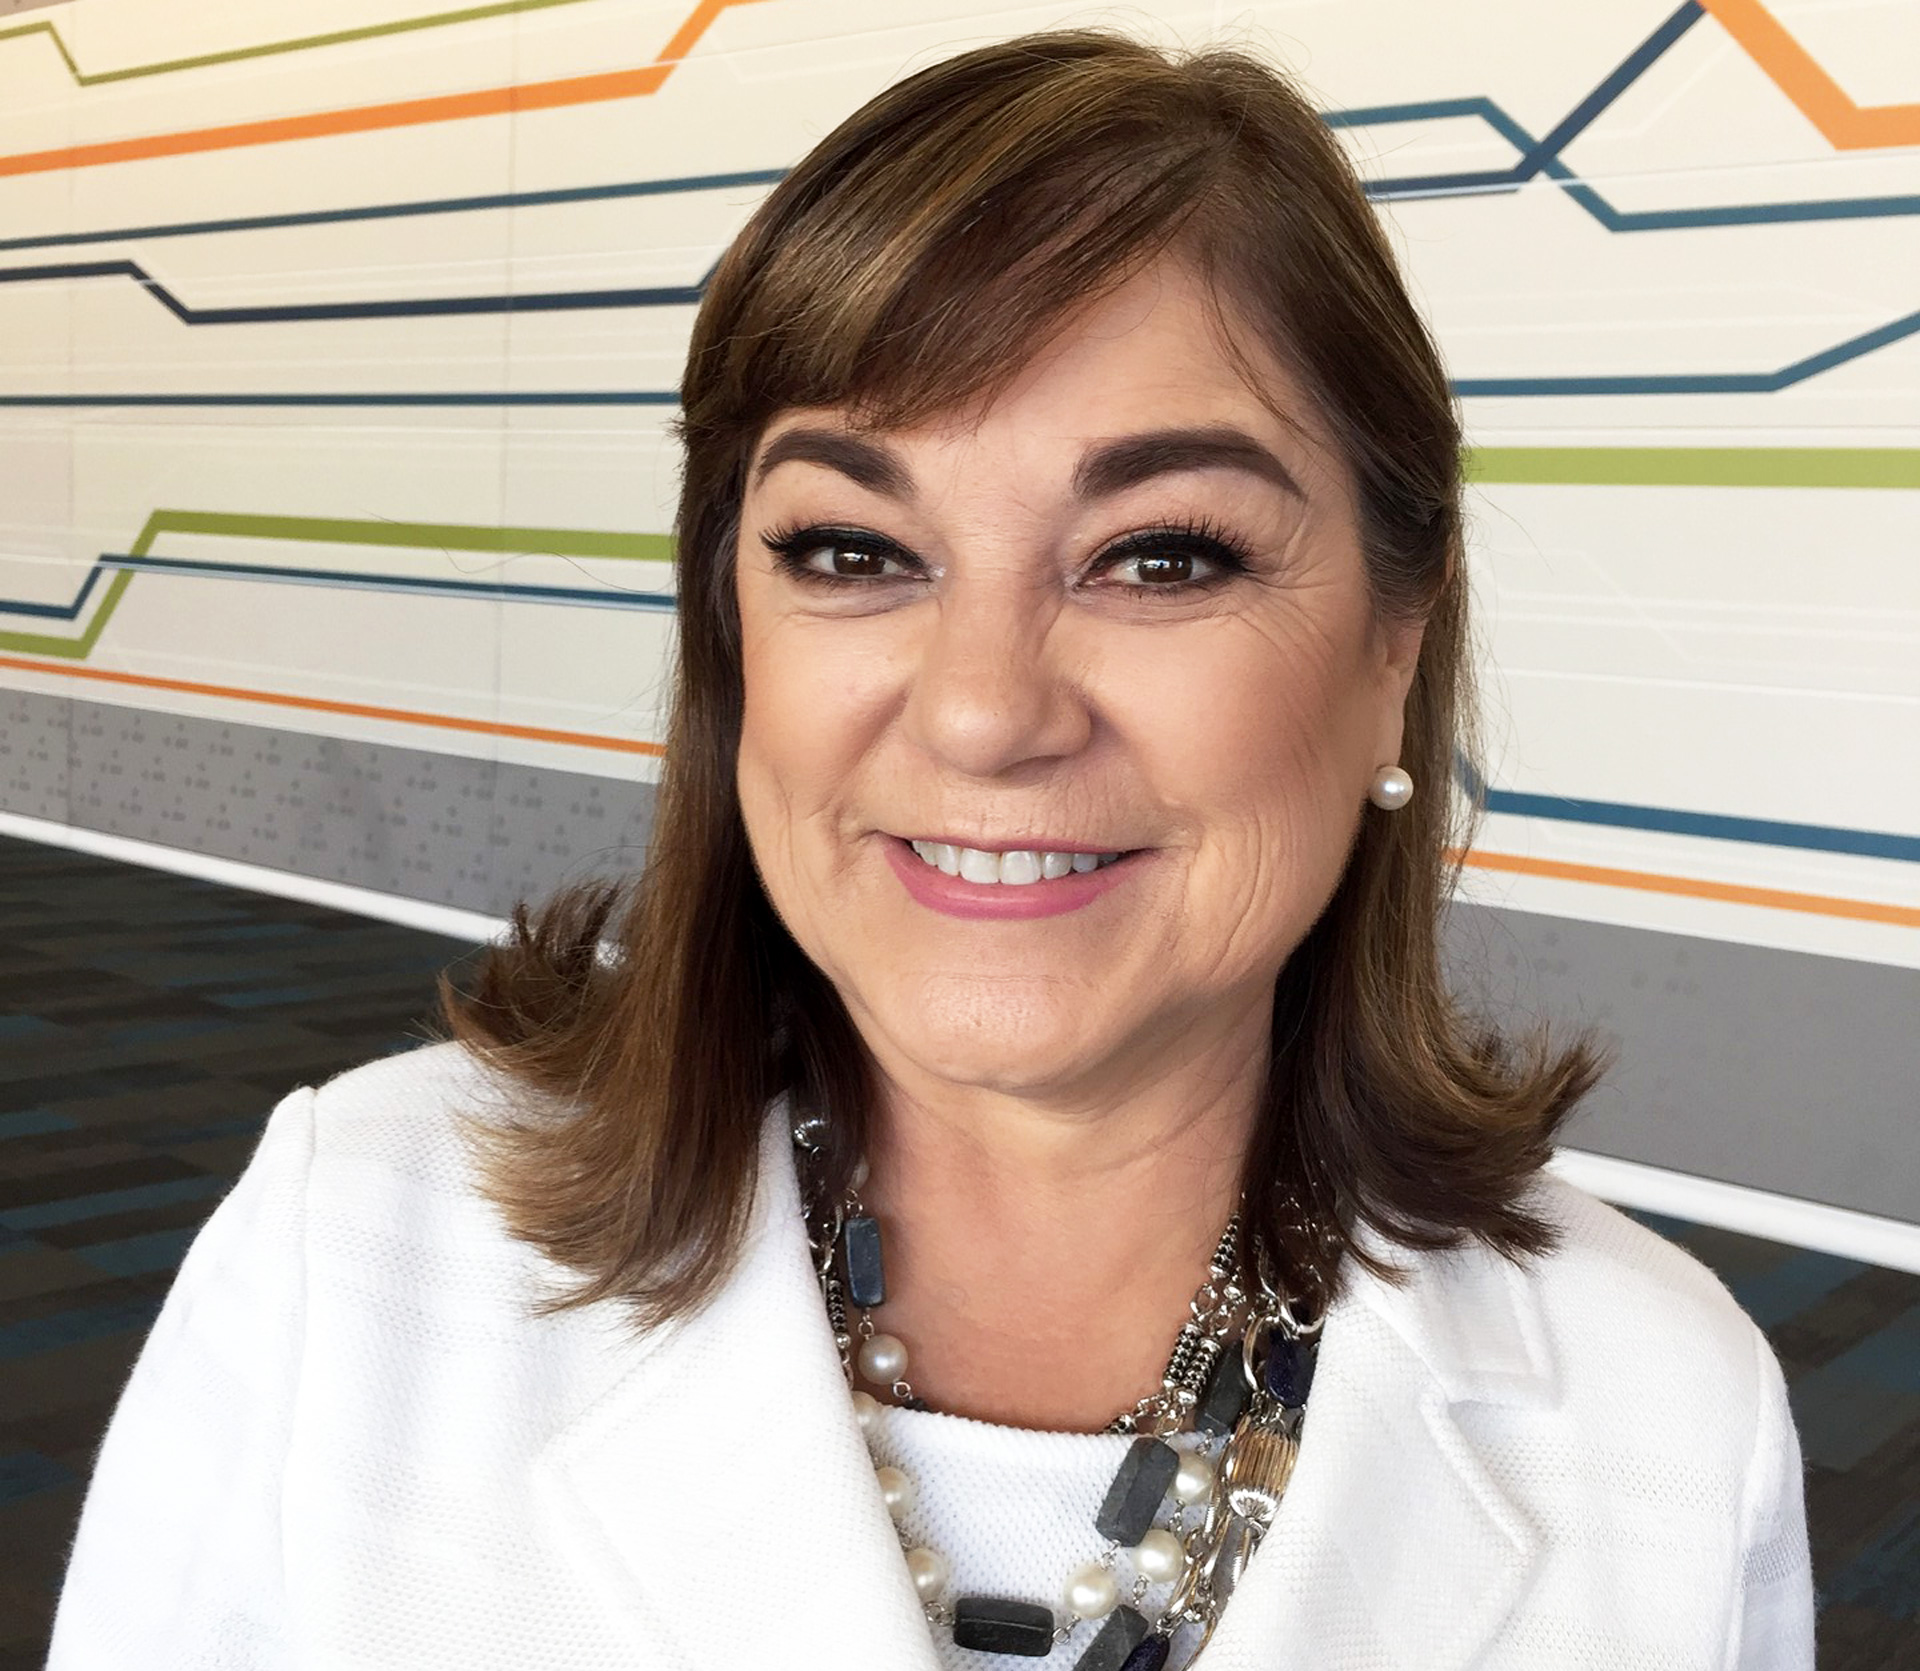 Congresswoman Loretta Sanchez is running to replace retiring U.S. Sen. Barbara Boxer.